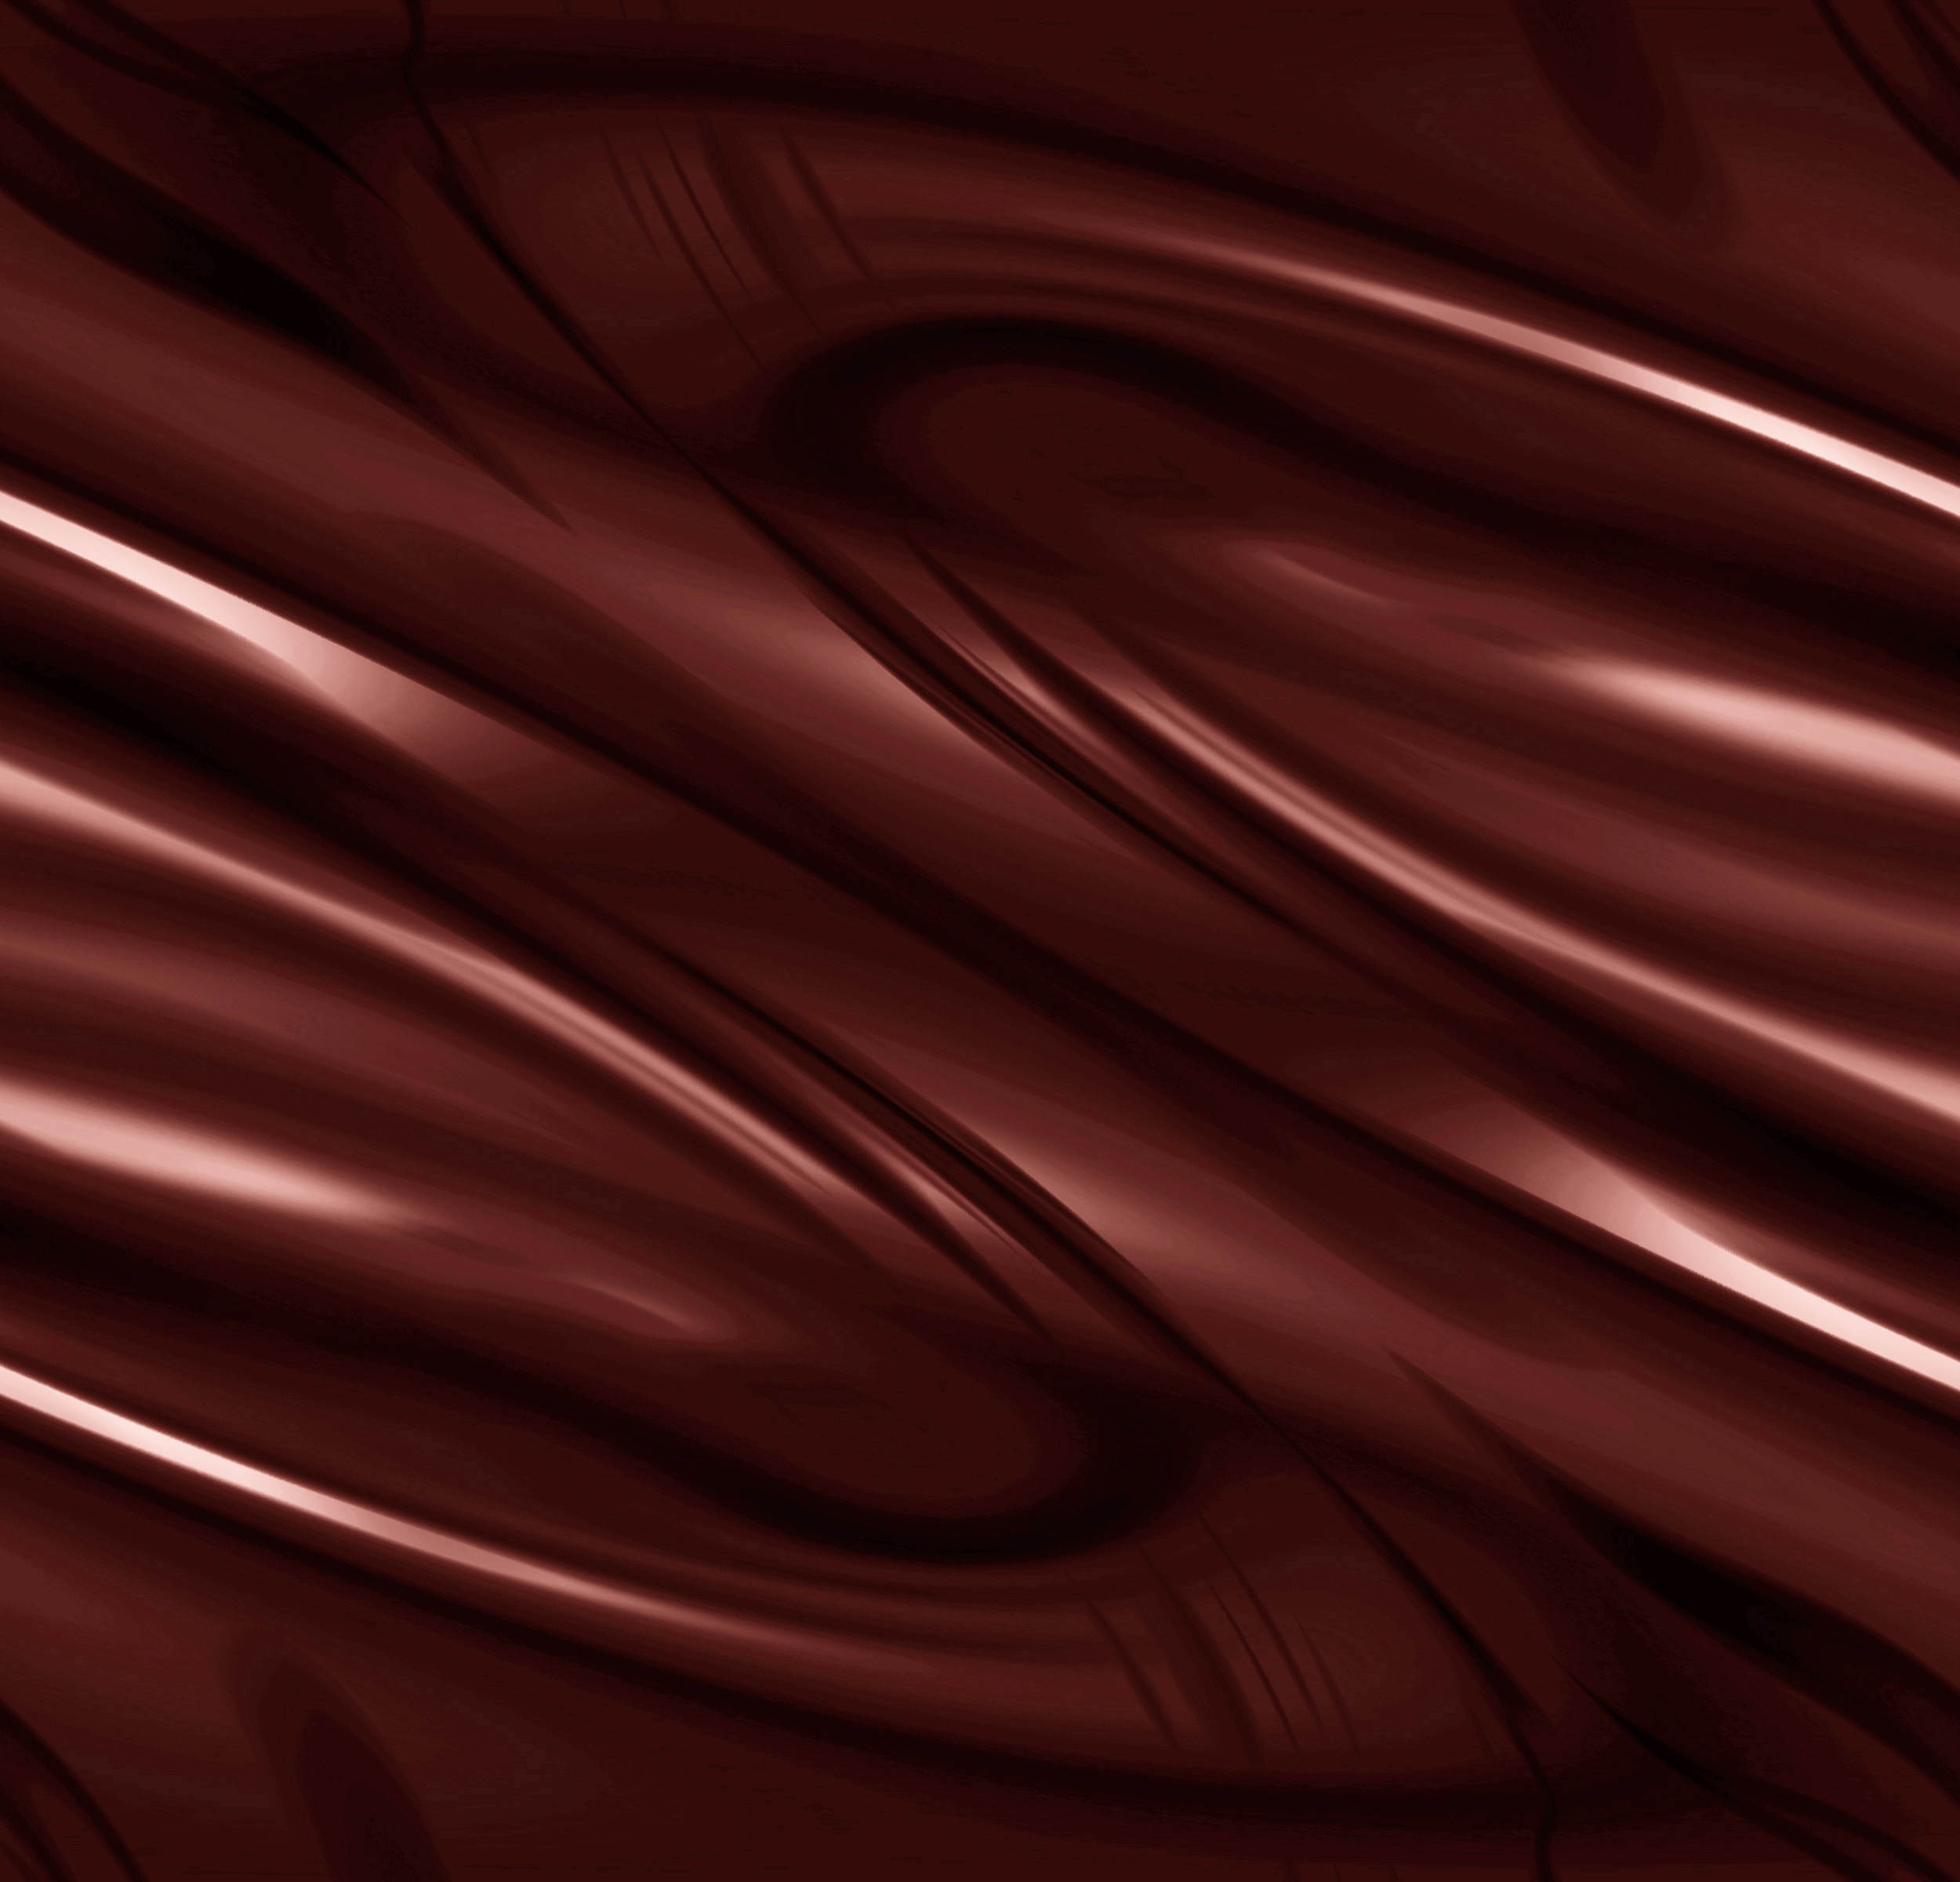 жидкий Chocolate Texture Photo Background Download